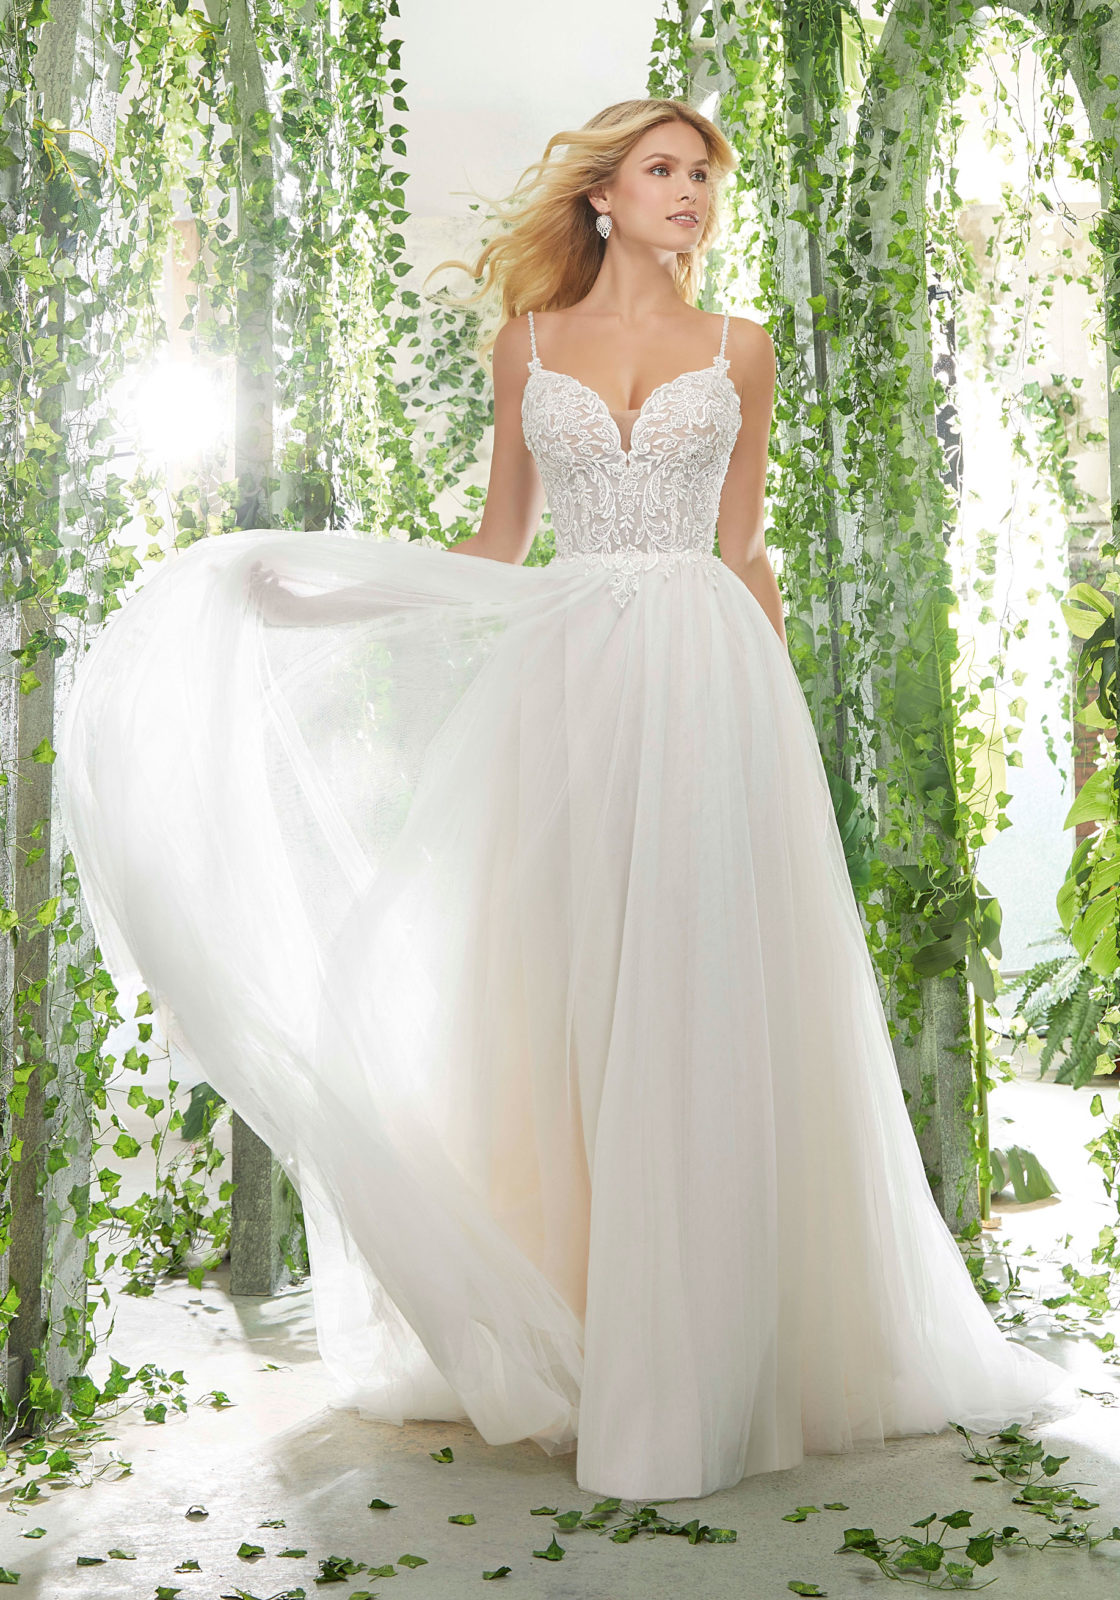 Voyage by Morilee at Miosa Bride